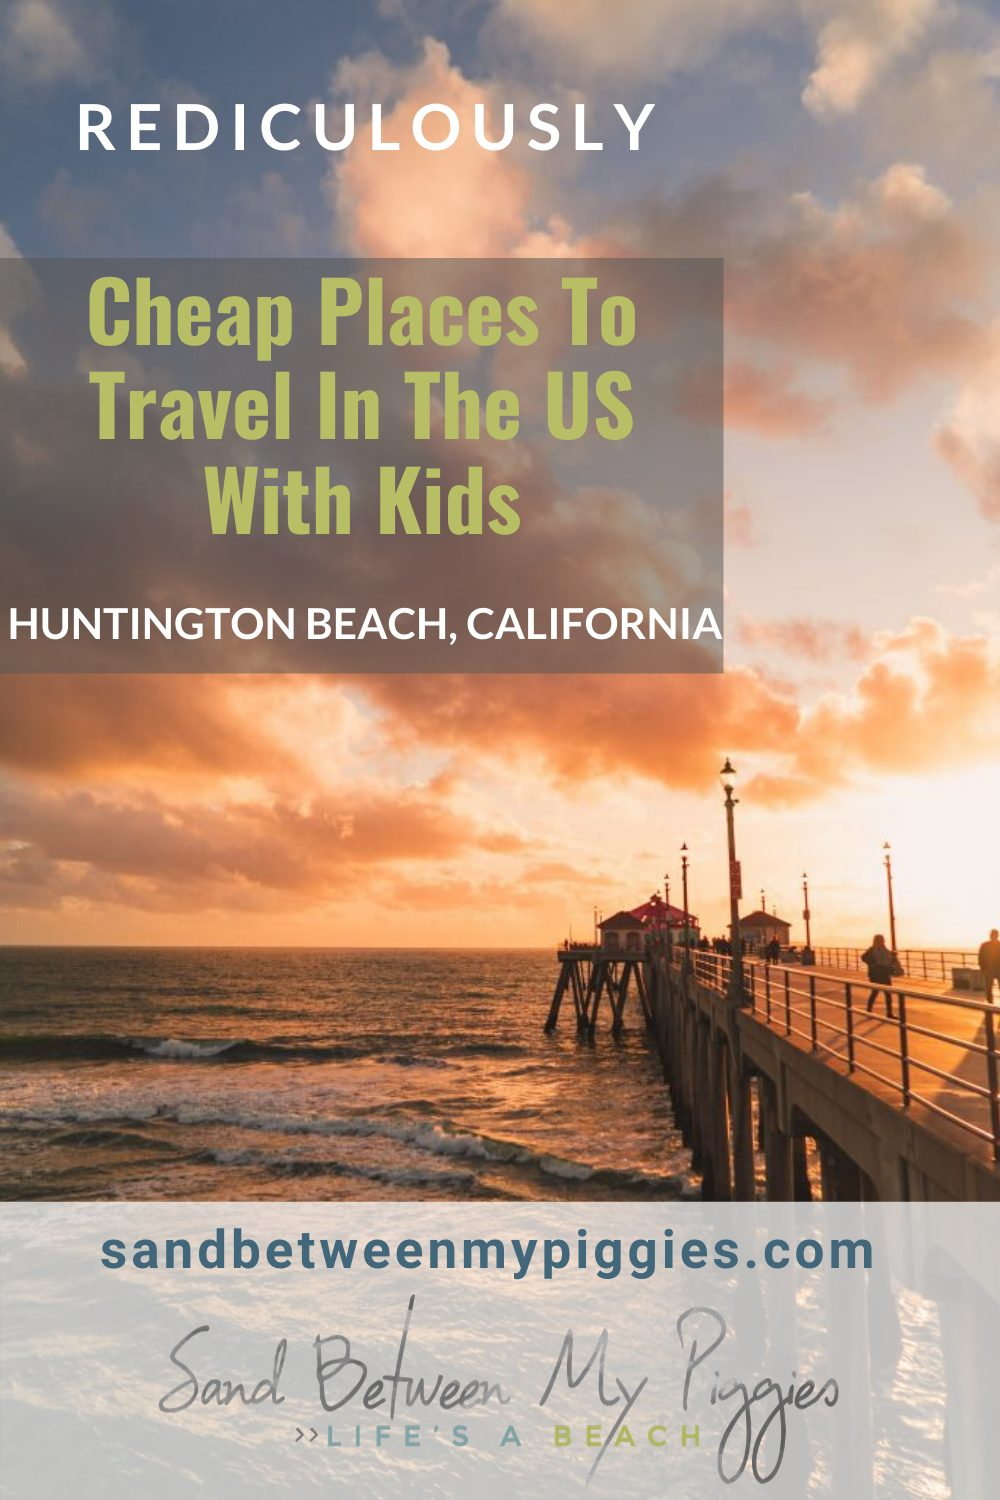 Head out with your kids and don't worry about breaking the bank! These cheap beach vacation destinations are a blast and won't leave you feeling like you emptied out your pockets. Where will you head first? #beach #travel #sandbetweenmypiggiesblog